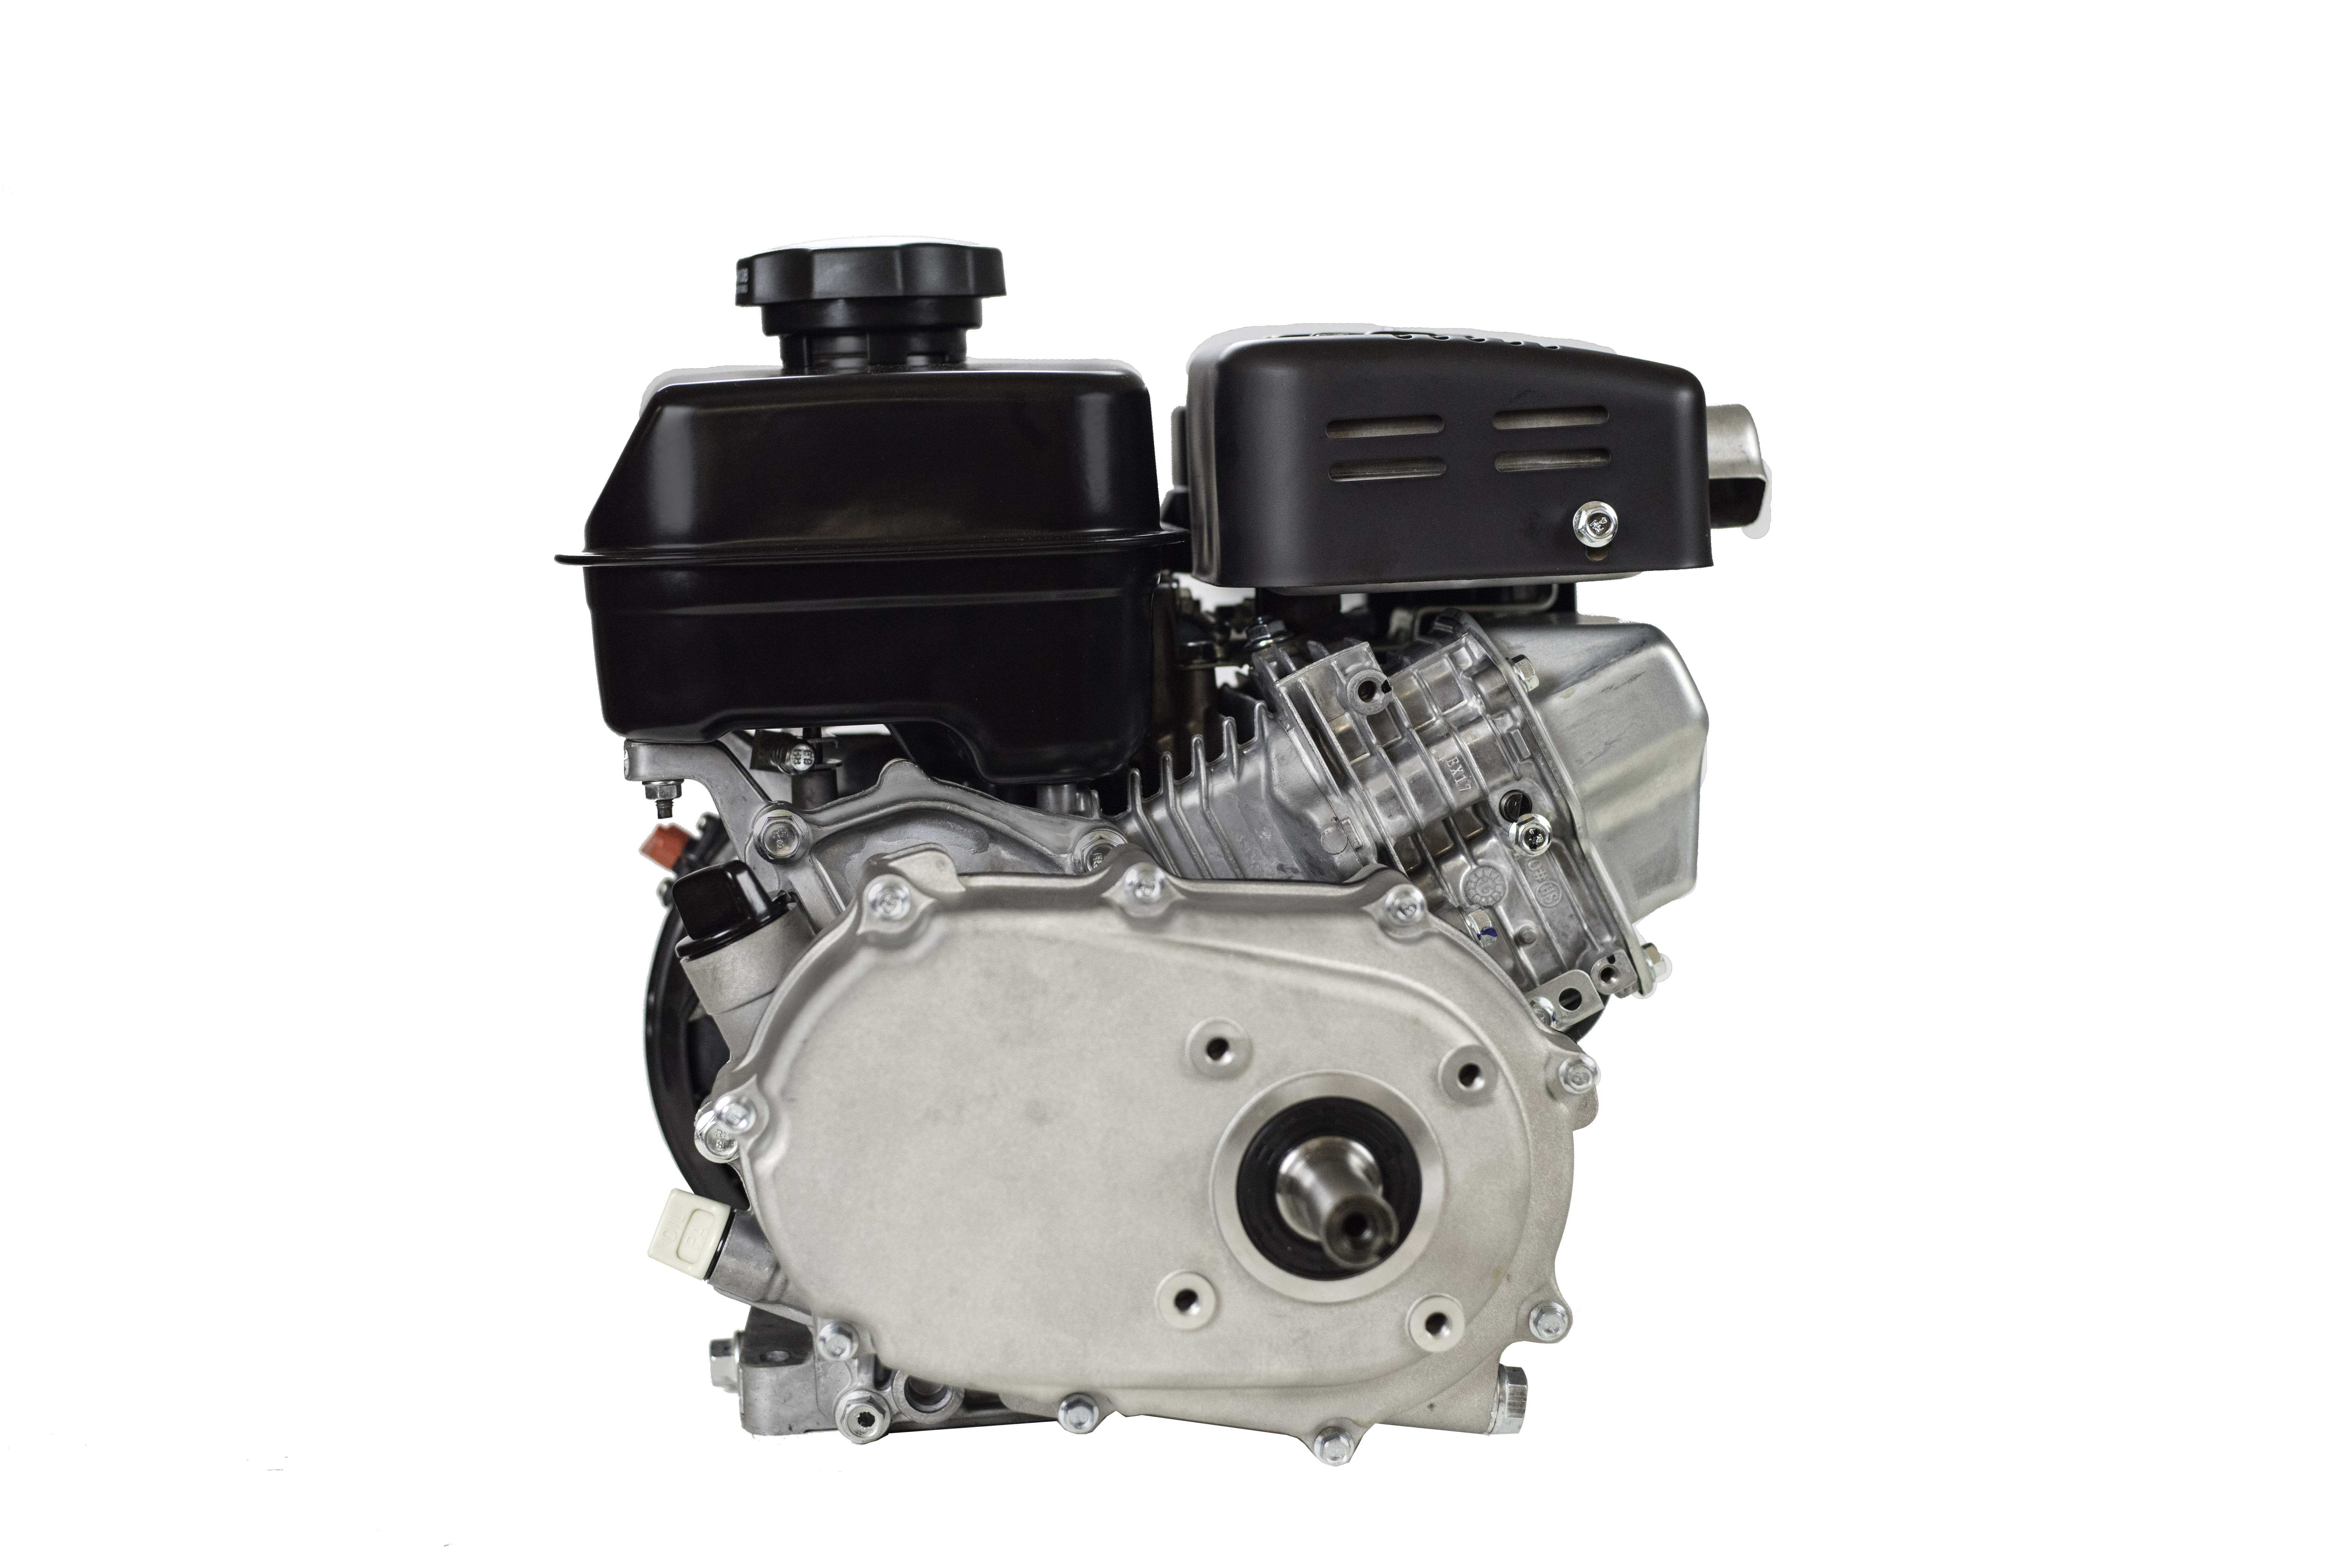 Subaru Introduces Gear Reduction For Overhead Cam Engines Motor Diagram By Adding 21 And 61 Technology Says